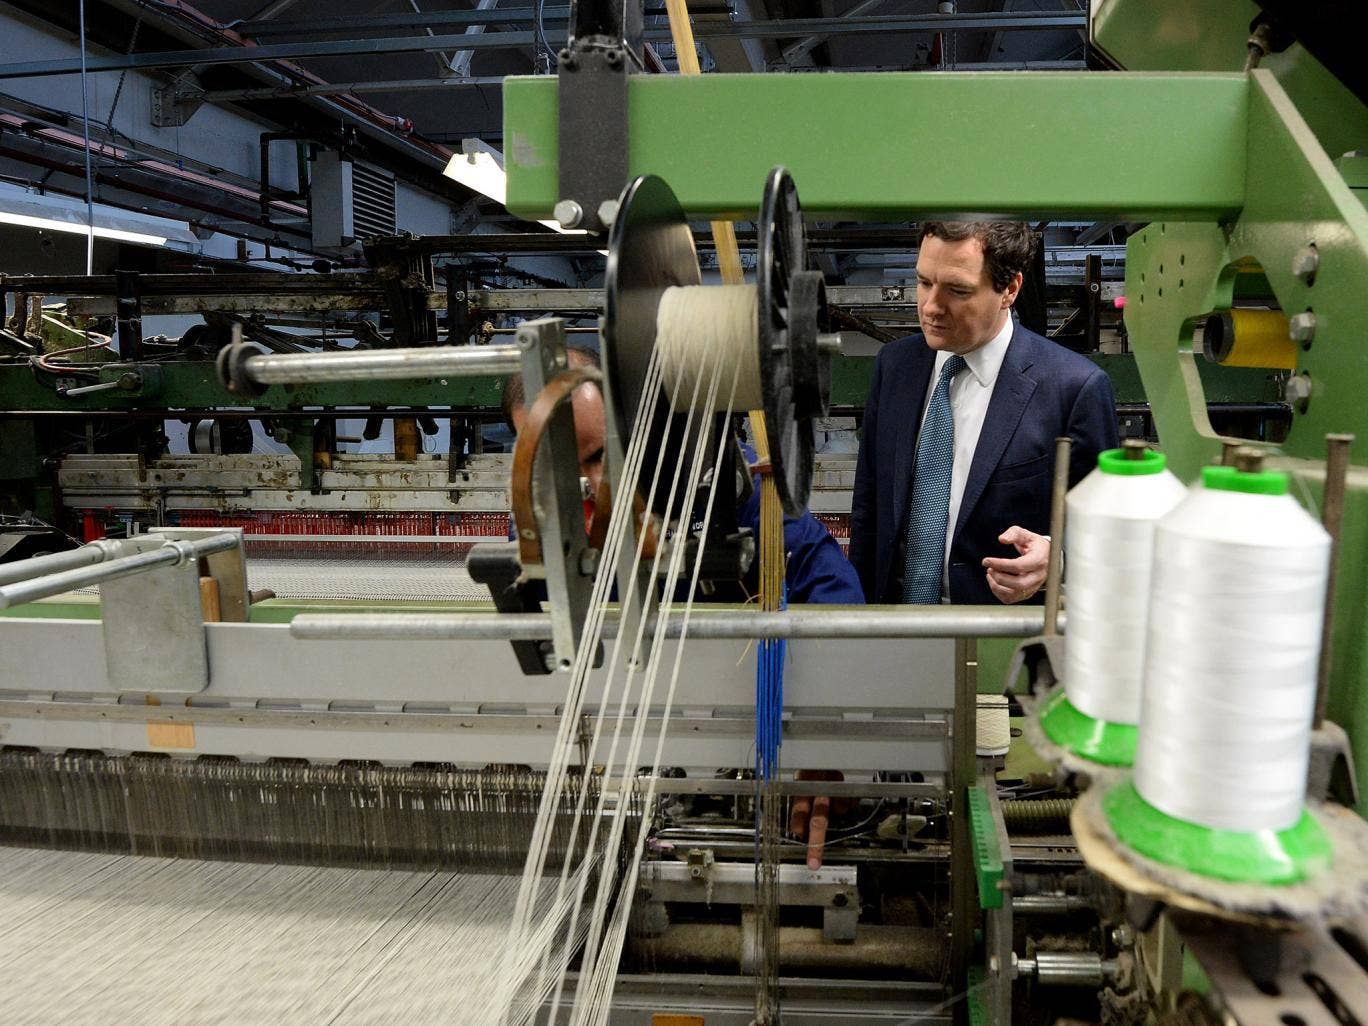 George Osborne during a visit to AW Hainsworth and Sons textile manufacturer in October. Year-on-year growth in GDP is expected to be 2.8 per cent in the fourth quarter of 2013, up from 1.9 per cent in the third